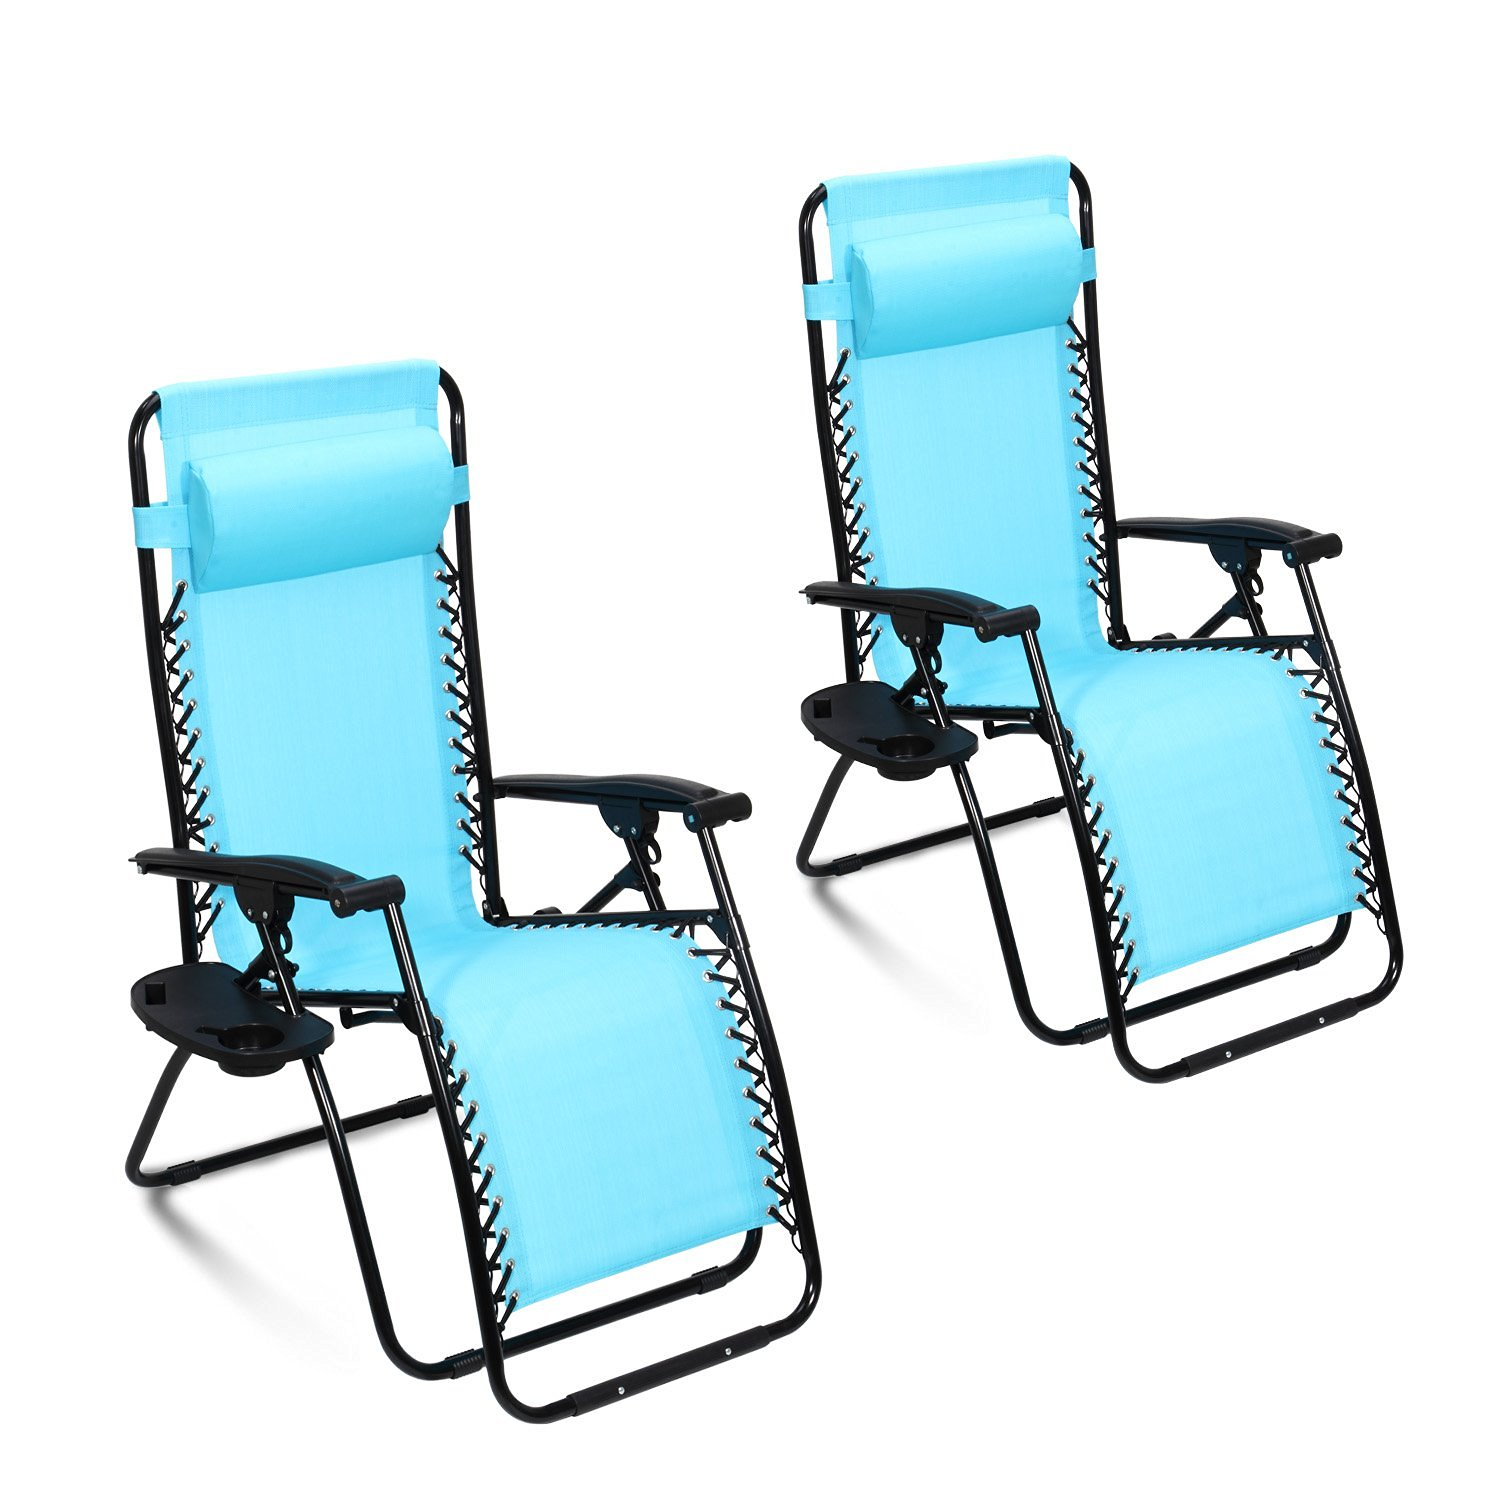 Top 10 Best Zero Gravity Chair Reviews — Always Feel Comfortable